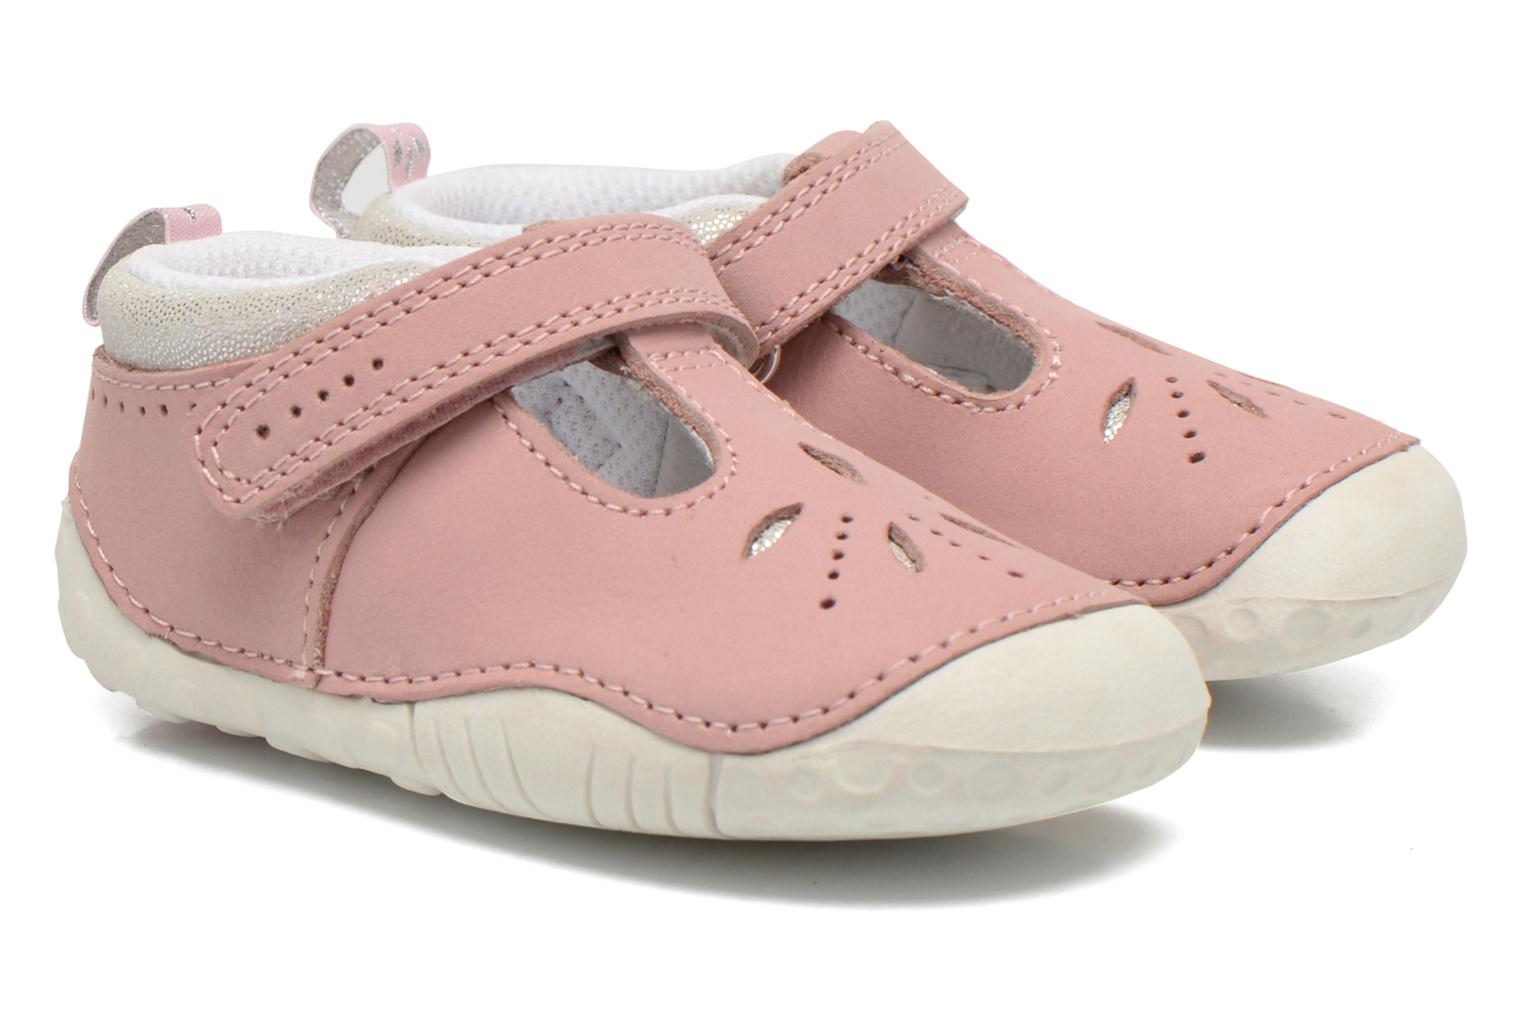 Chaussons Start Rite Polly Rose vue 3/4